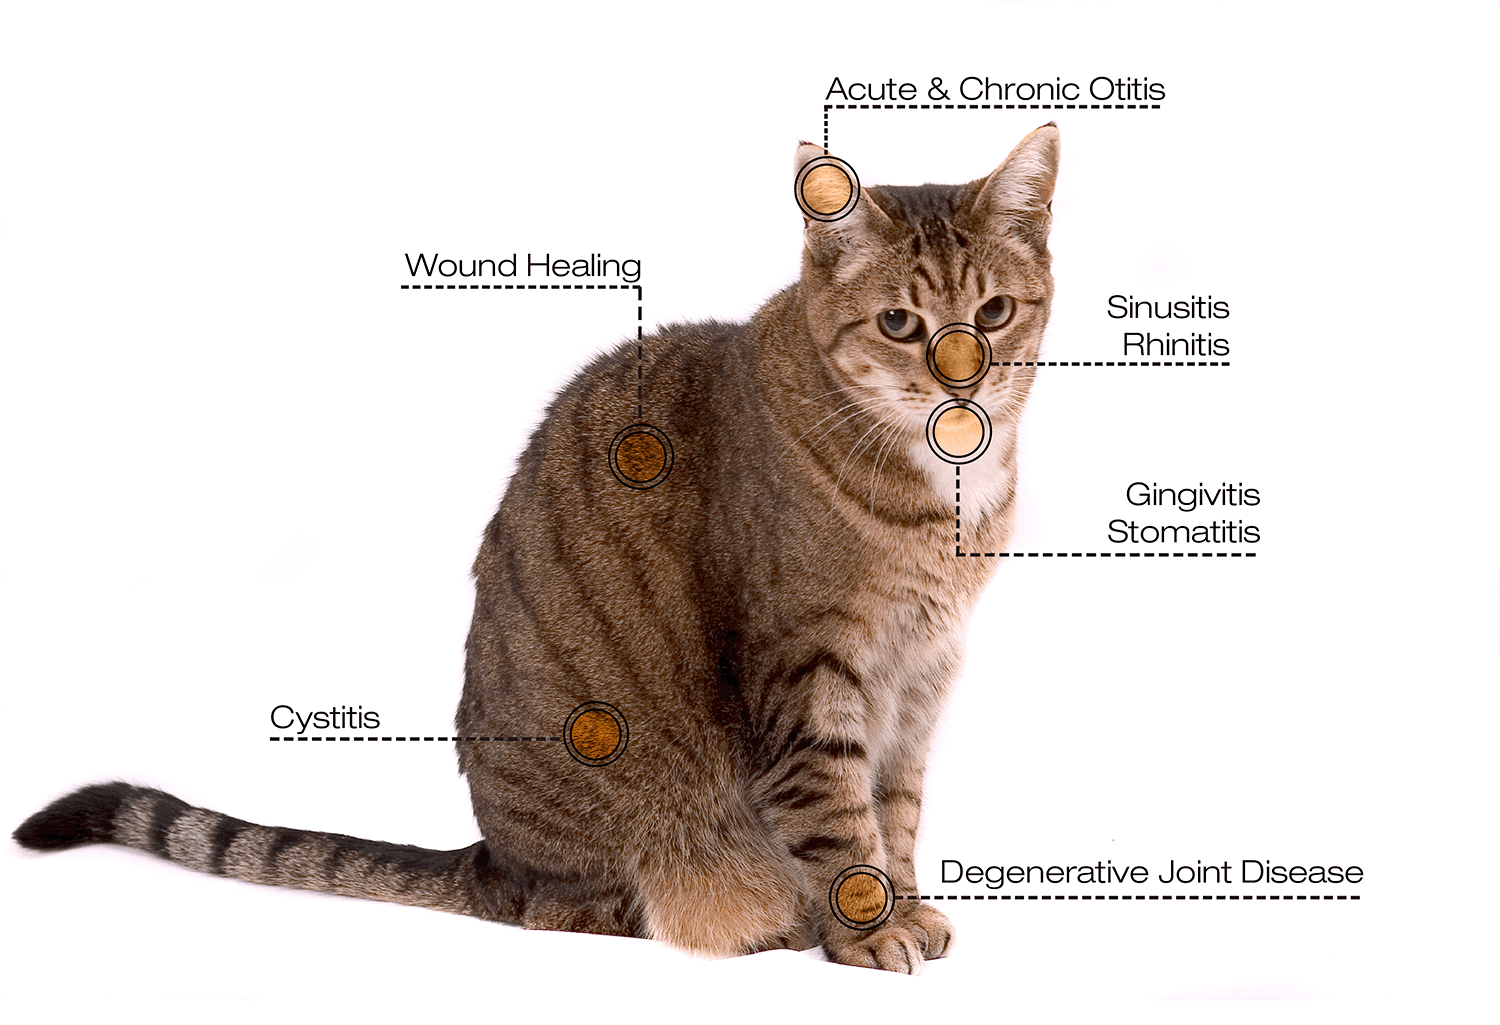 Laser therapy diagram for cats at Owl Creek Veterinary Hospital